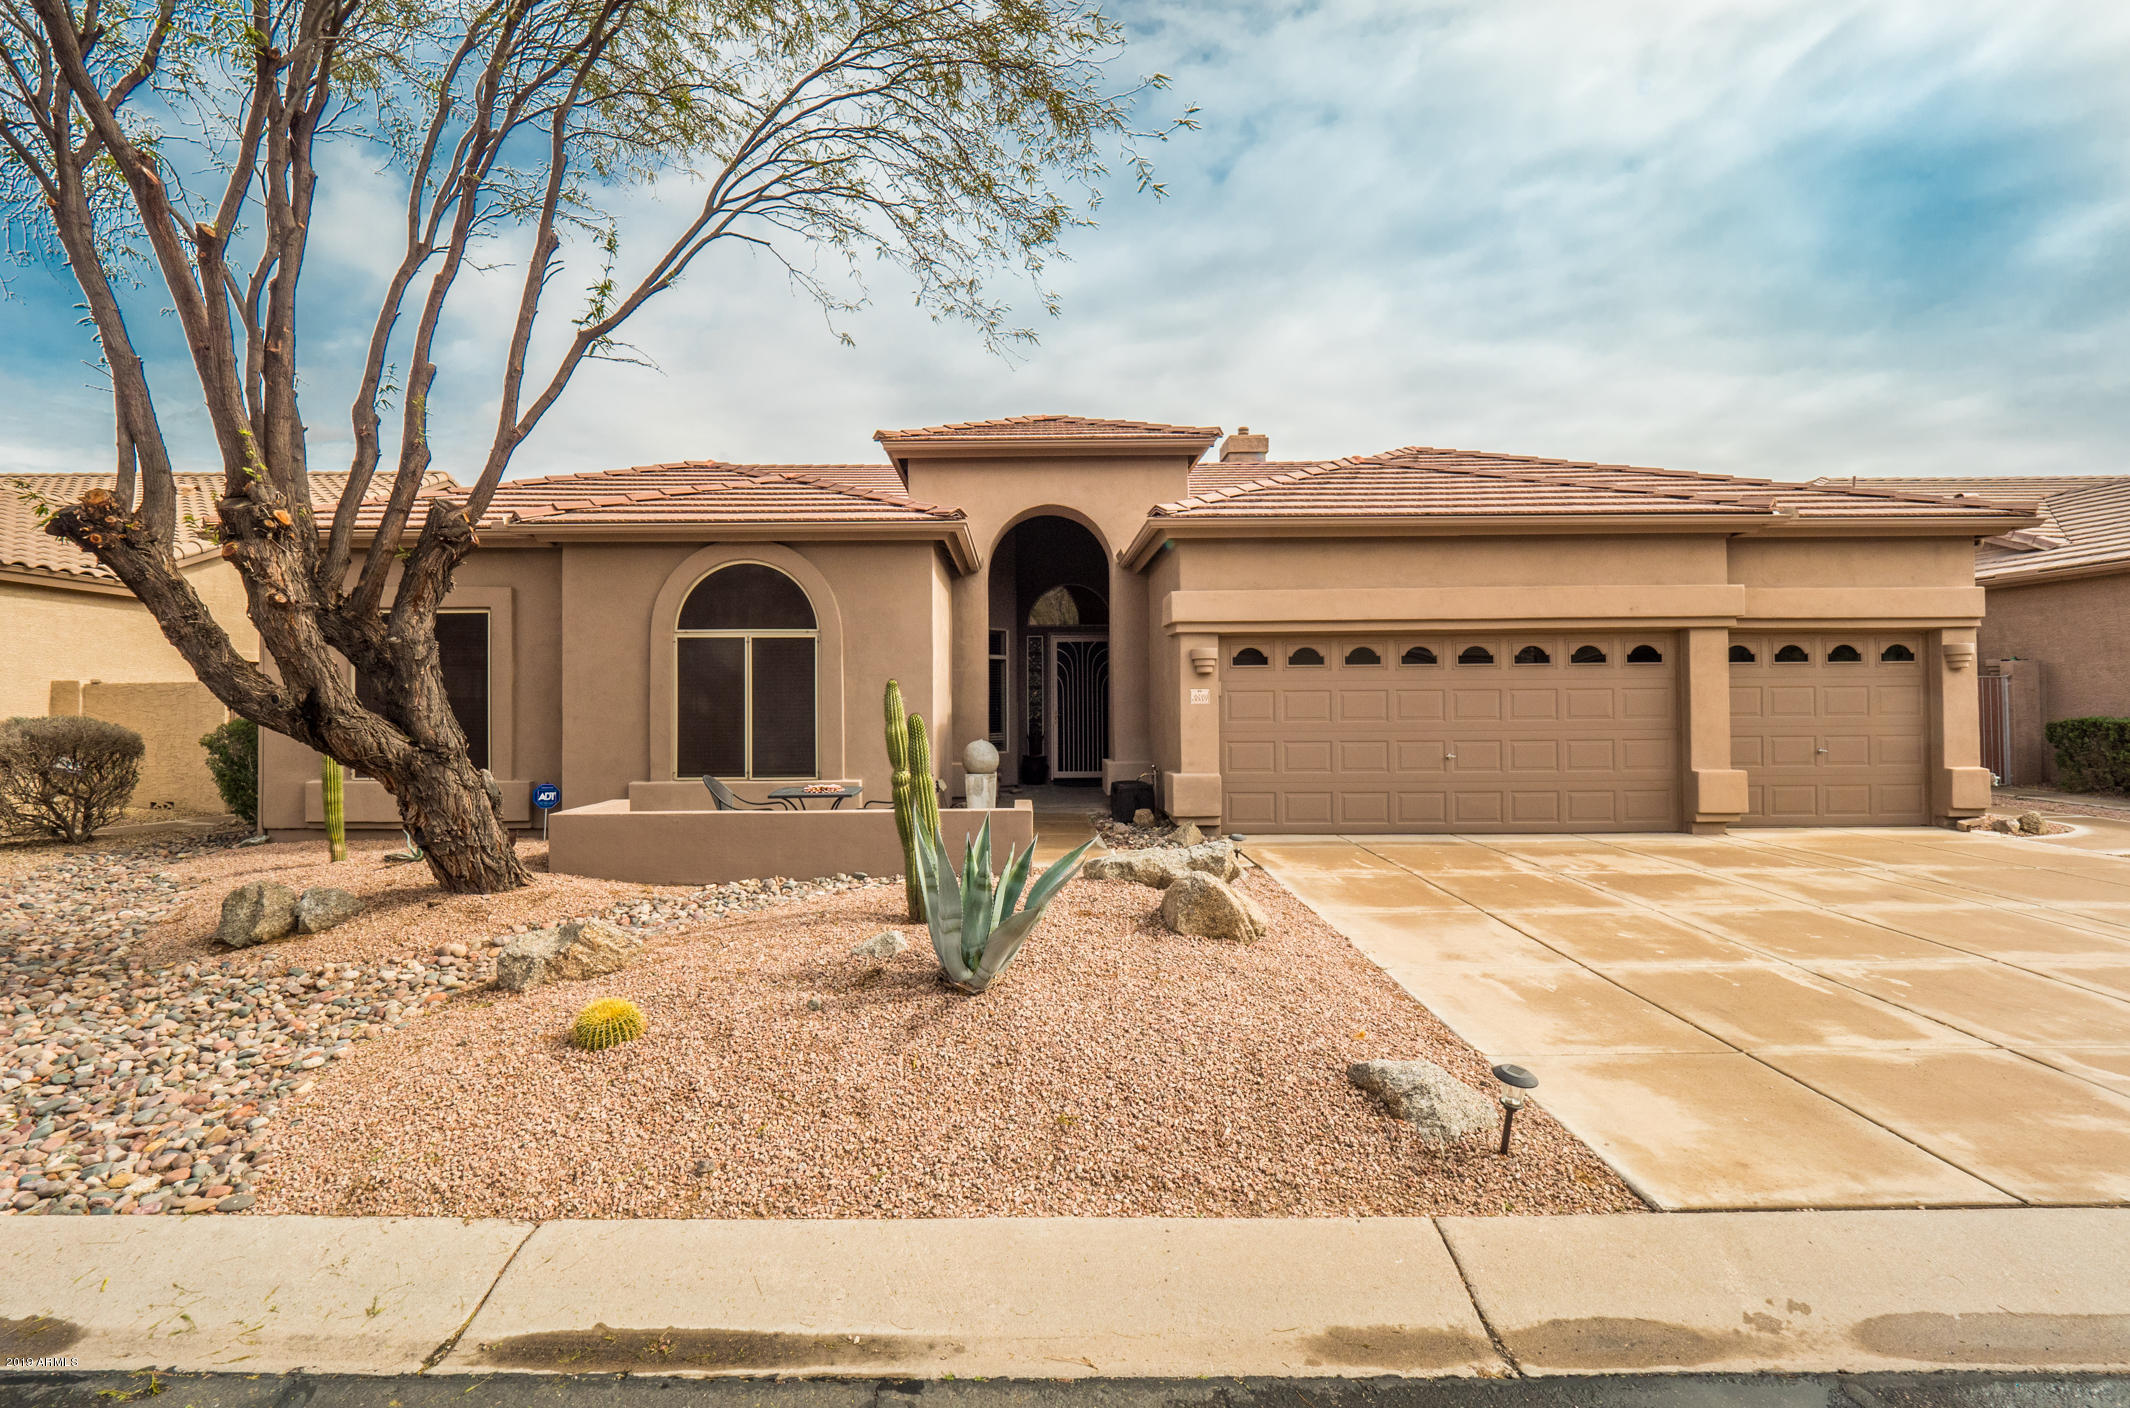 Photo of 3639 N EAGLE CANYON --, Mesa, AZ 85207